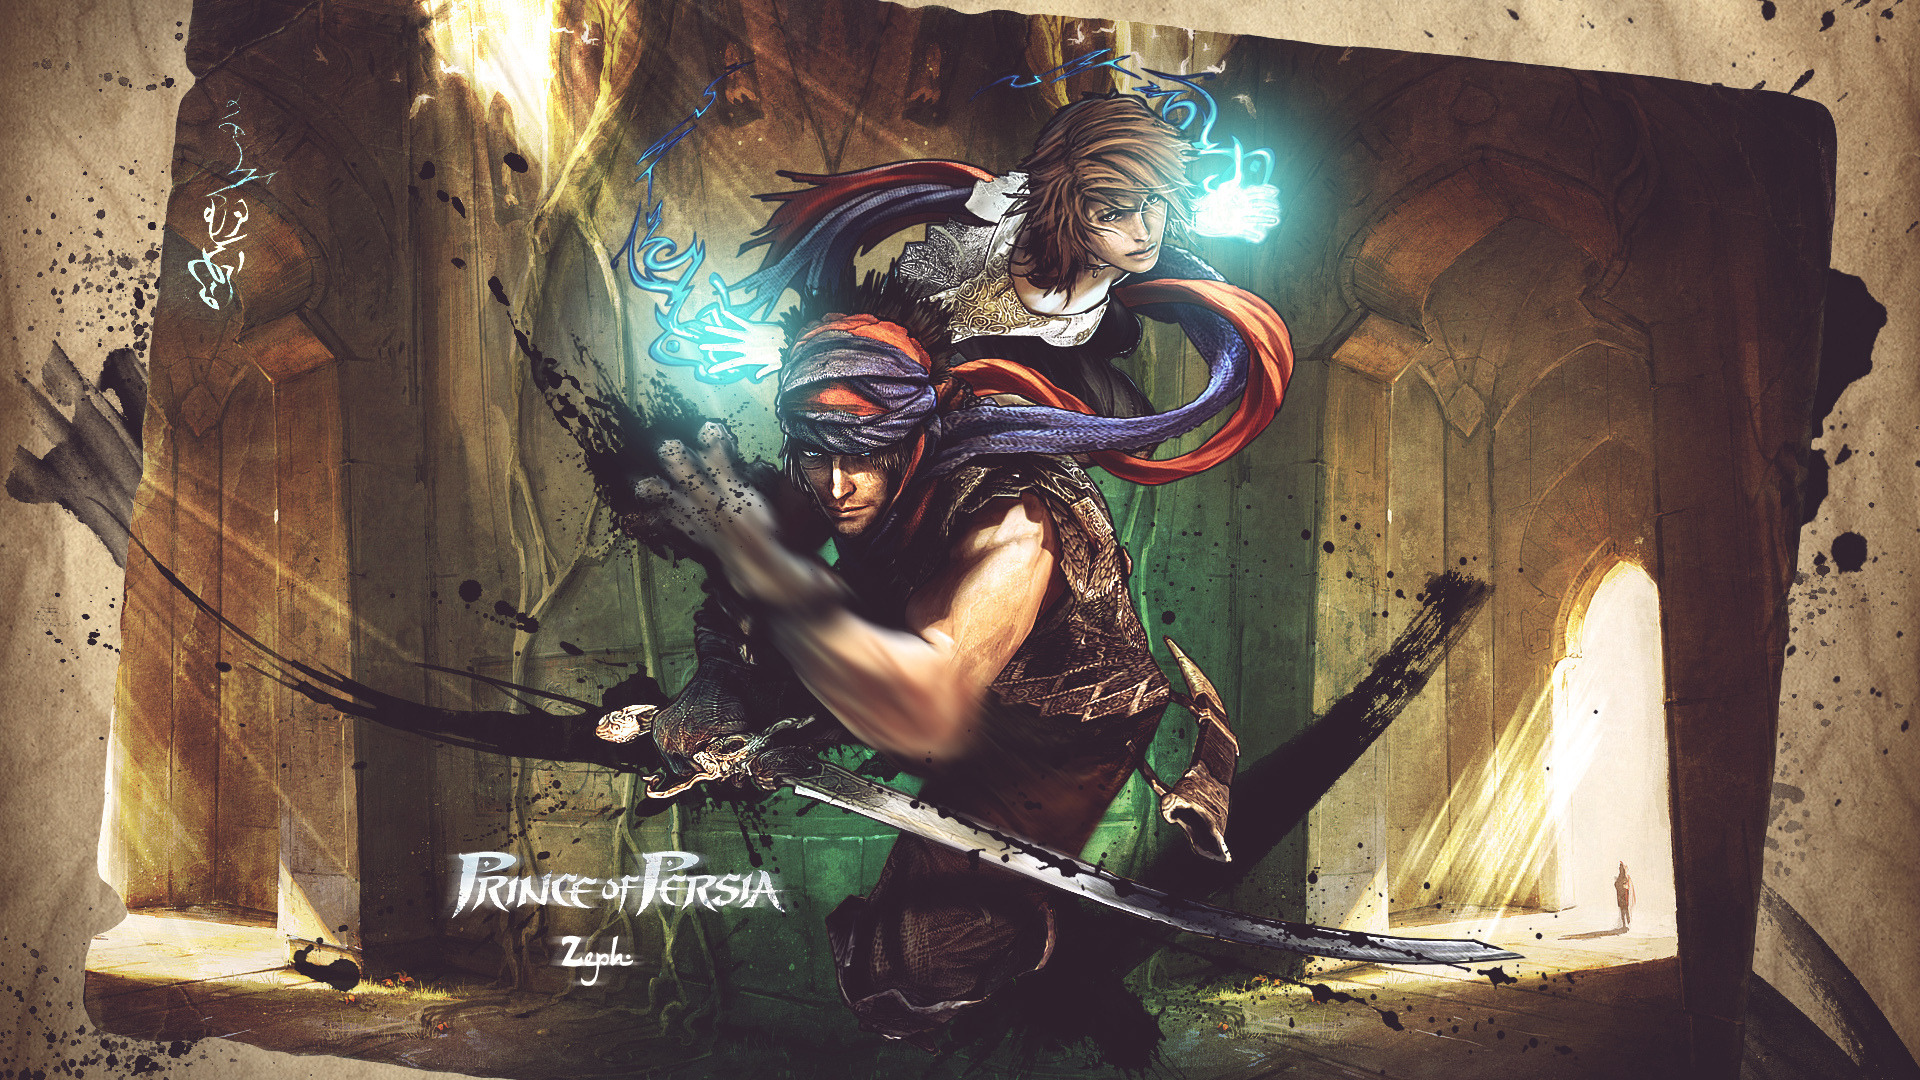 Prince of persia game wallpaper 97 wallpapers hd - Prince wallpaper ...